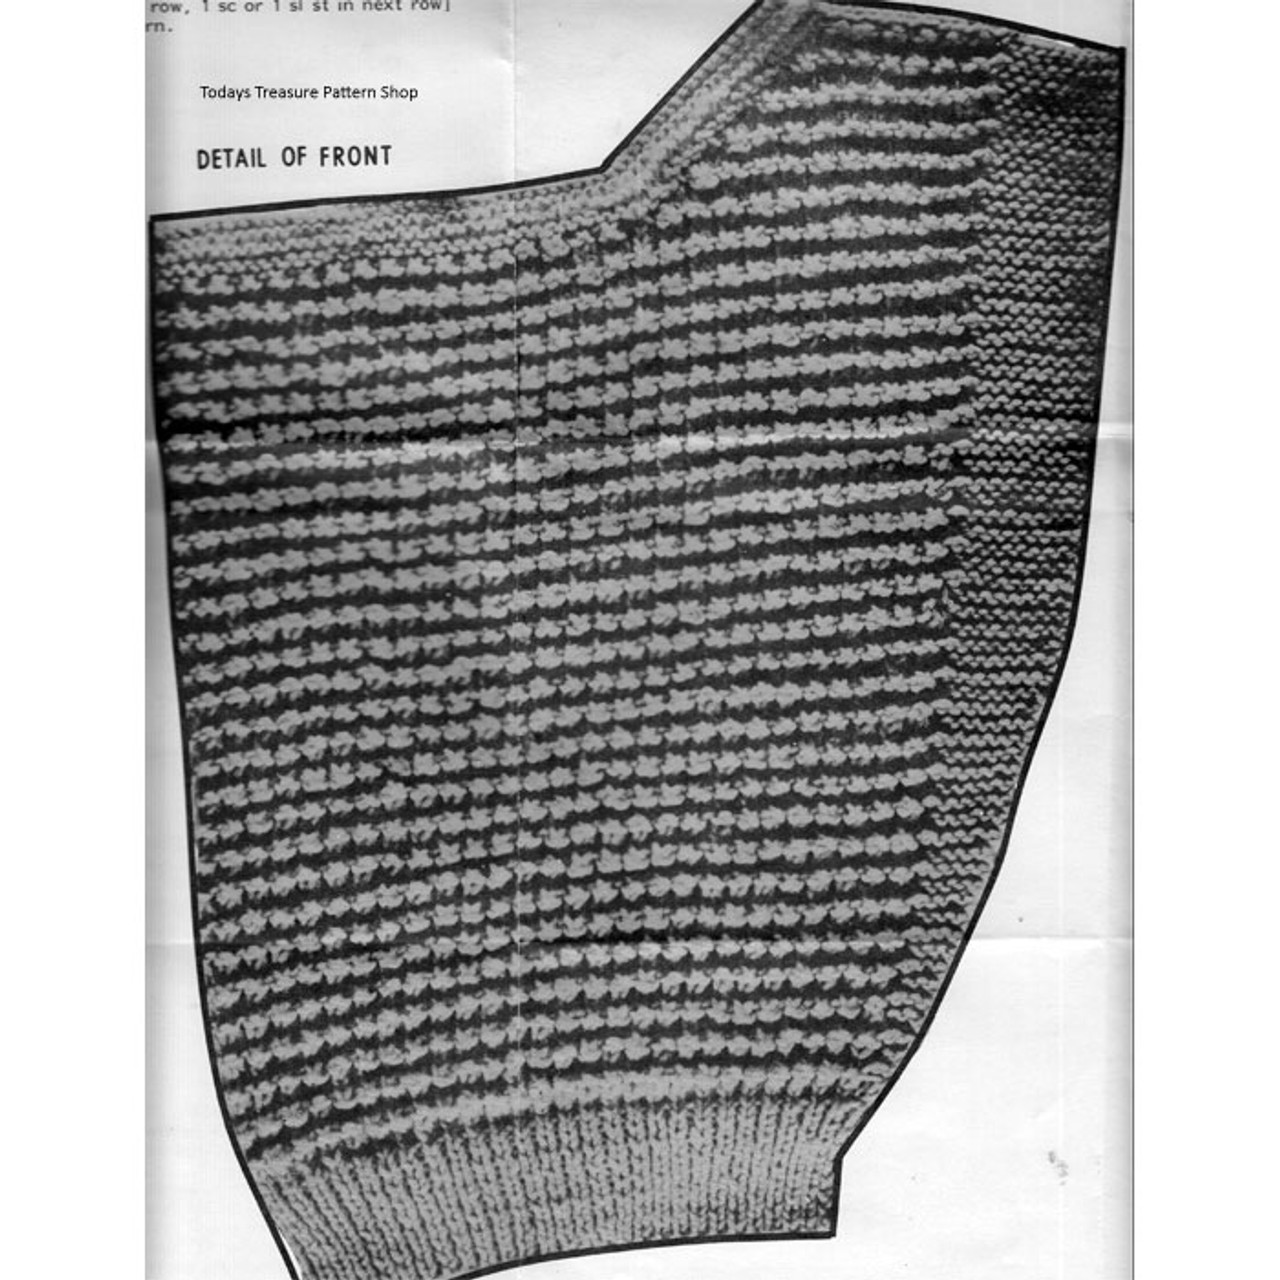 Knitted Sleeveless Blouse Mail Order Pattern